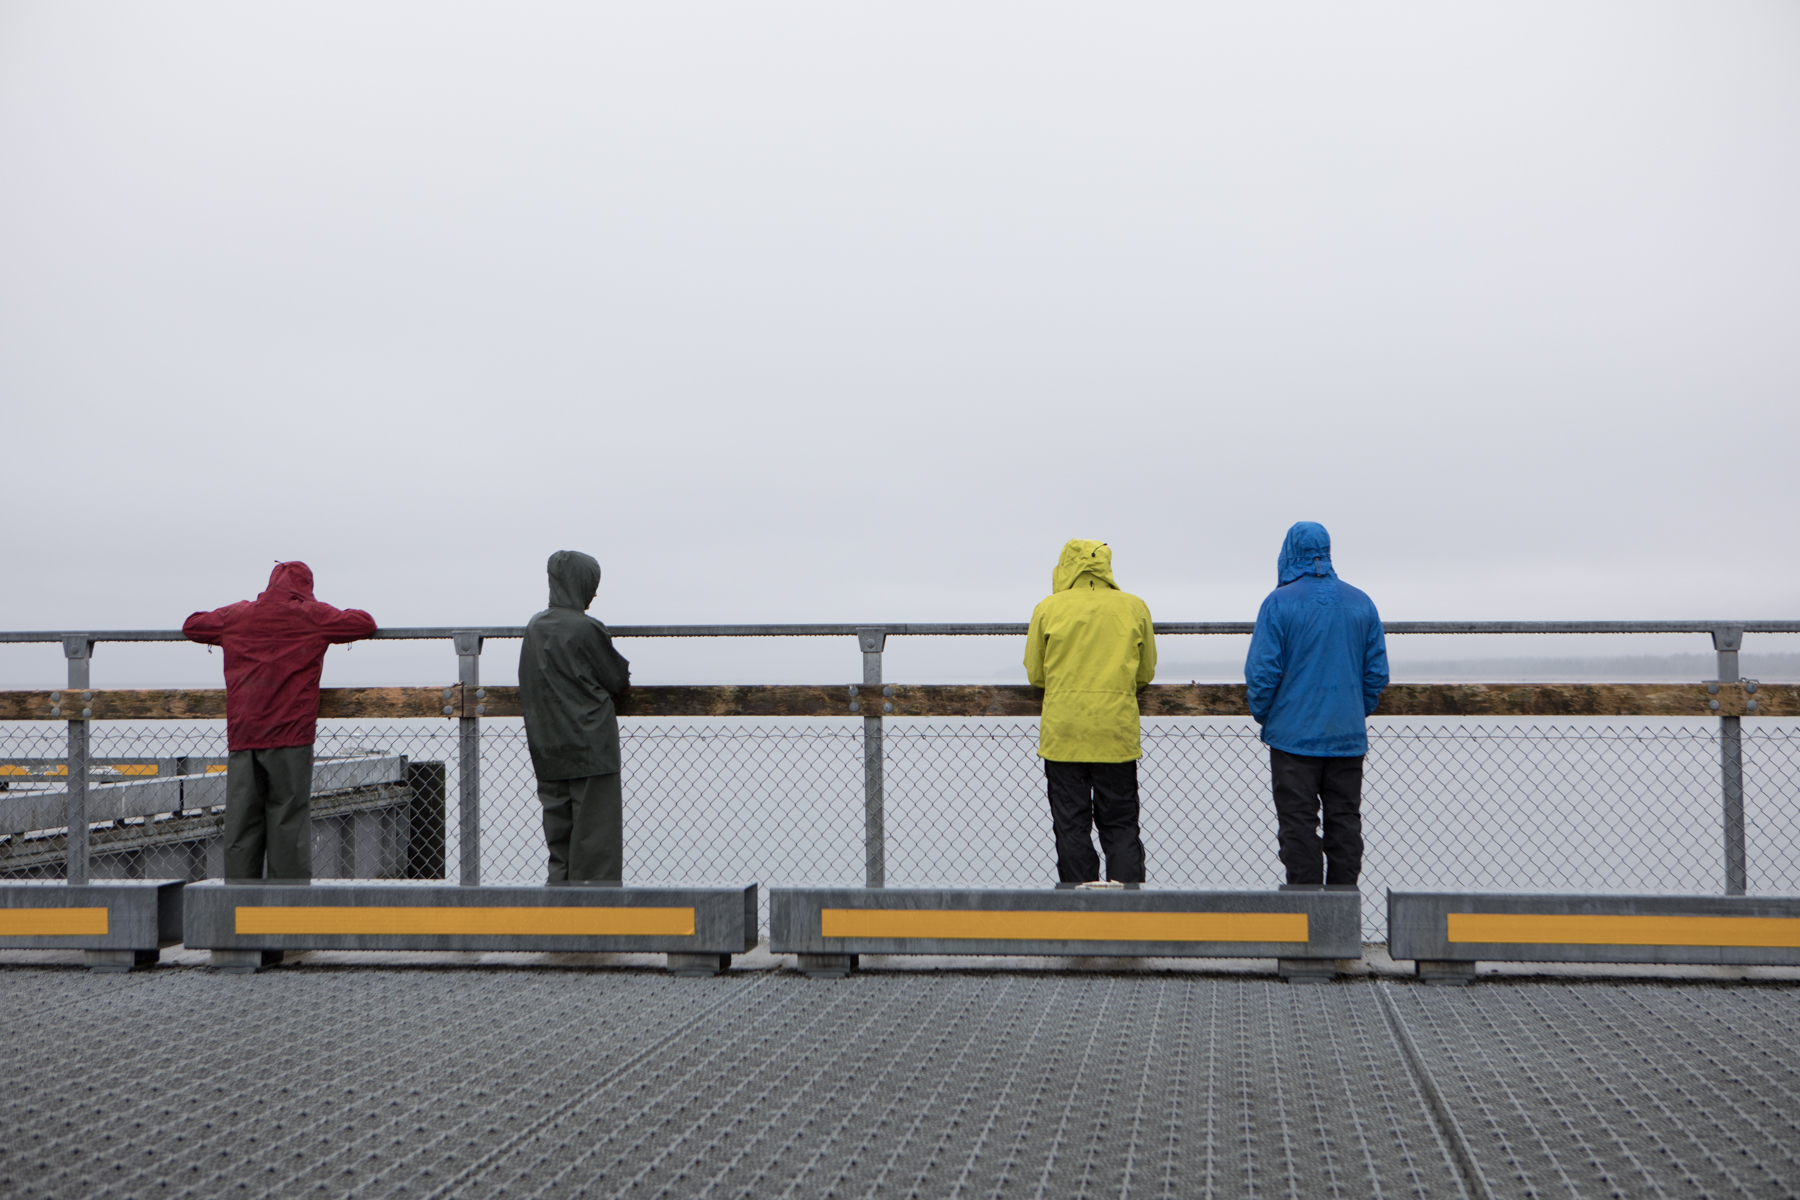 Rain jackets. Waiting for our water taxi. The weather predictions were wet: rain, with showers in the evening.  The first two days of our trip would be a lesson in wetness management and an appropriate introduction to the temperate rainforest of the Tongass National Forest.